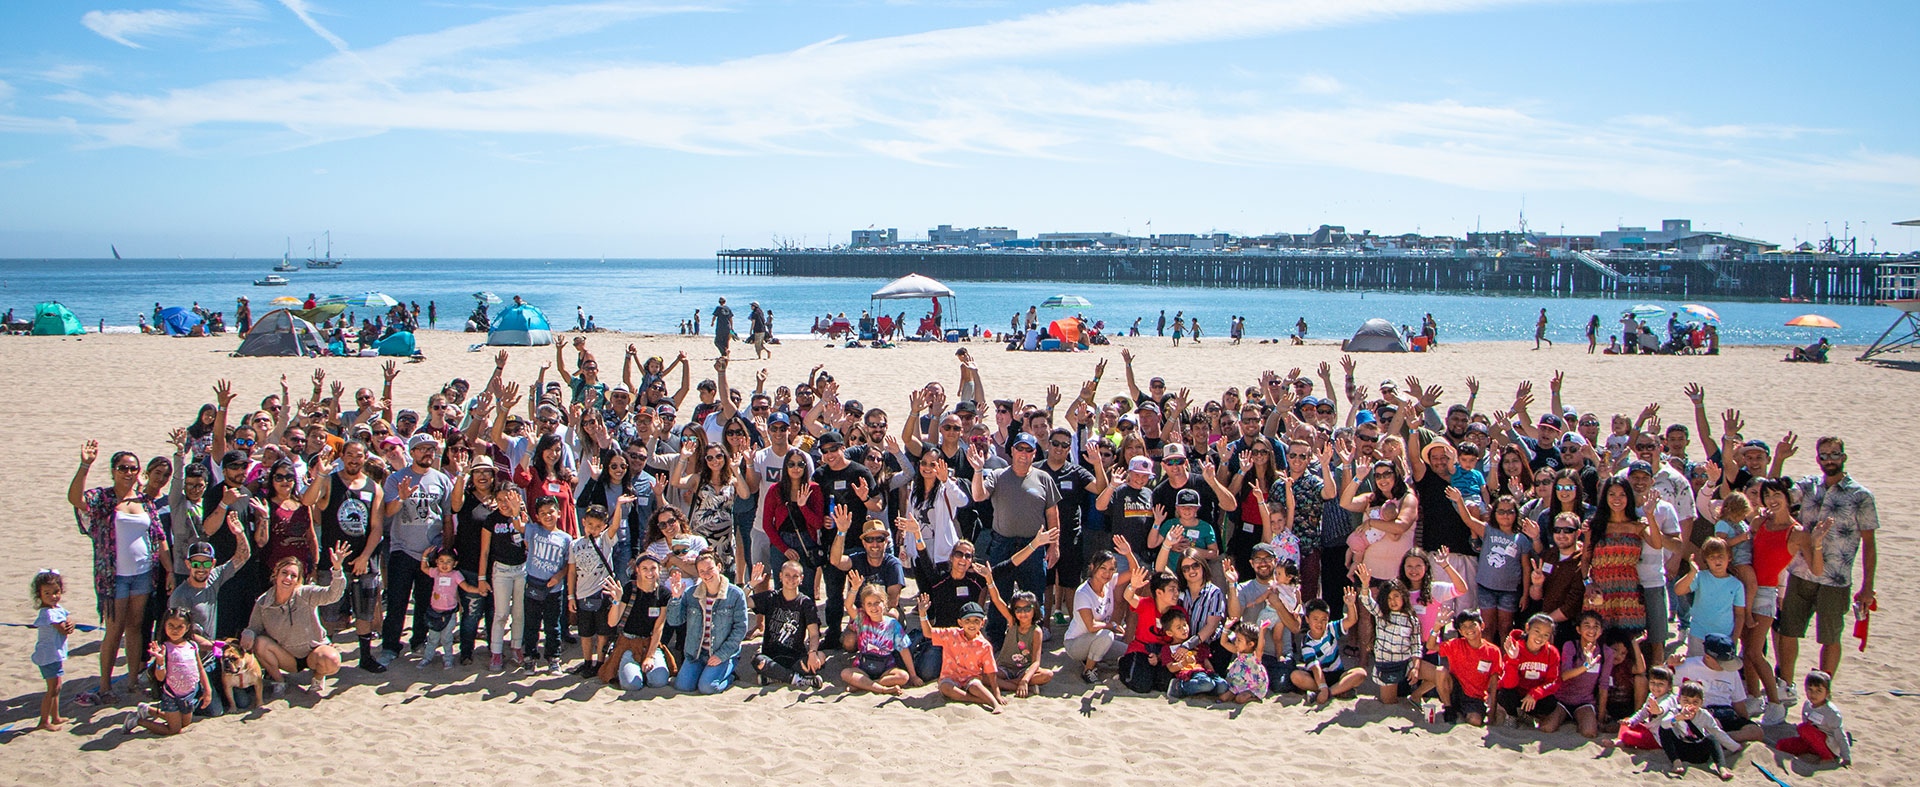 The SC Builders team at our summer picnic at the Santa Cruz Boardwalk.